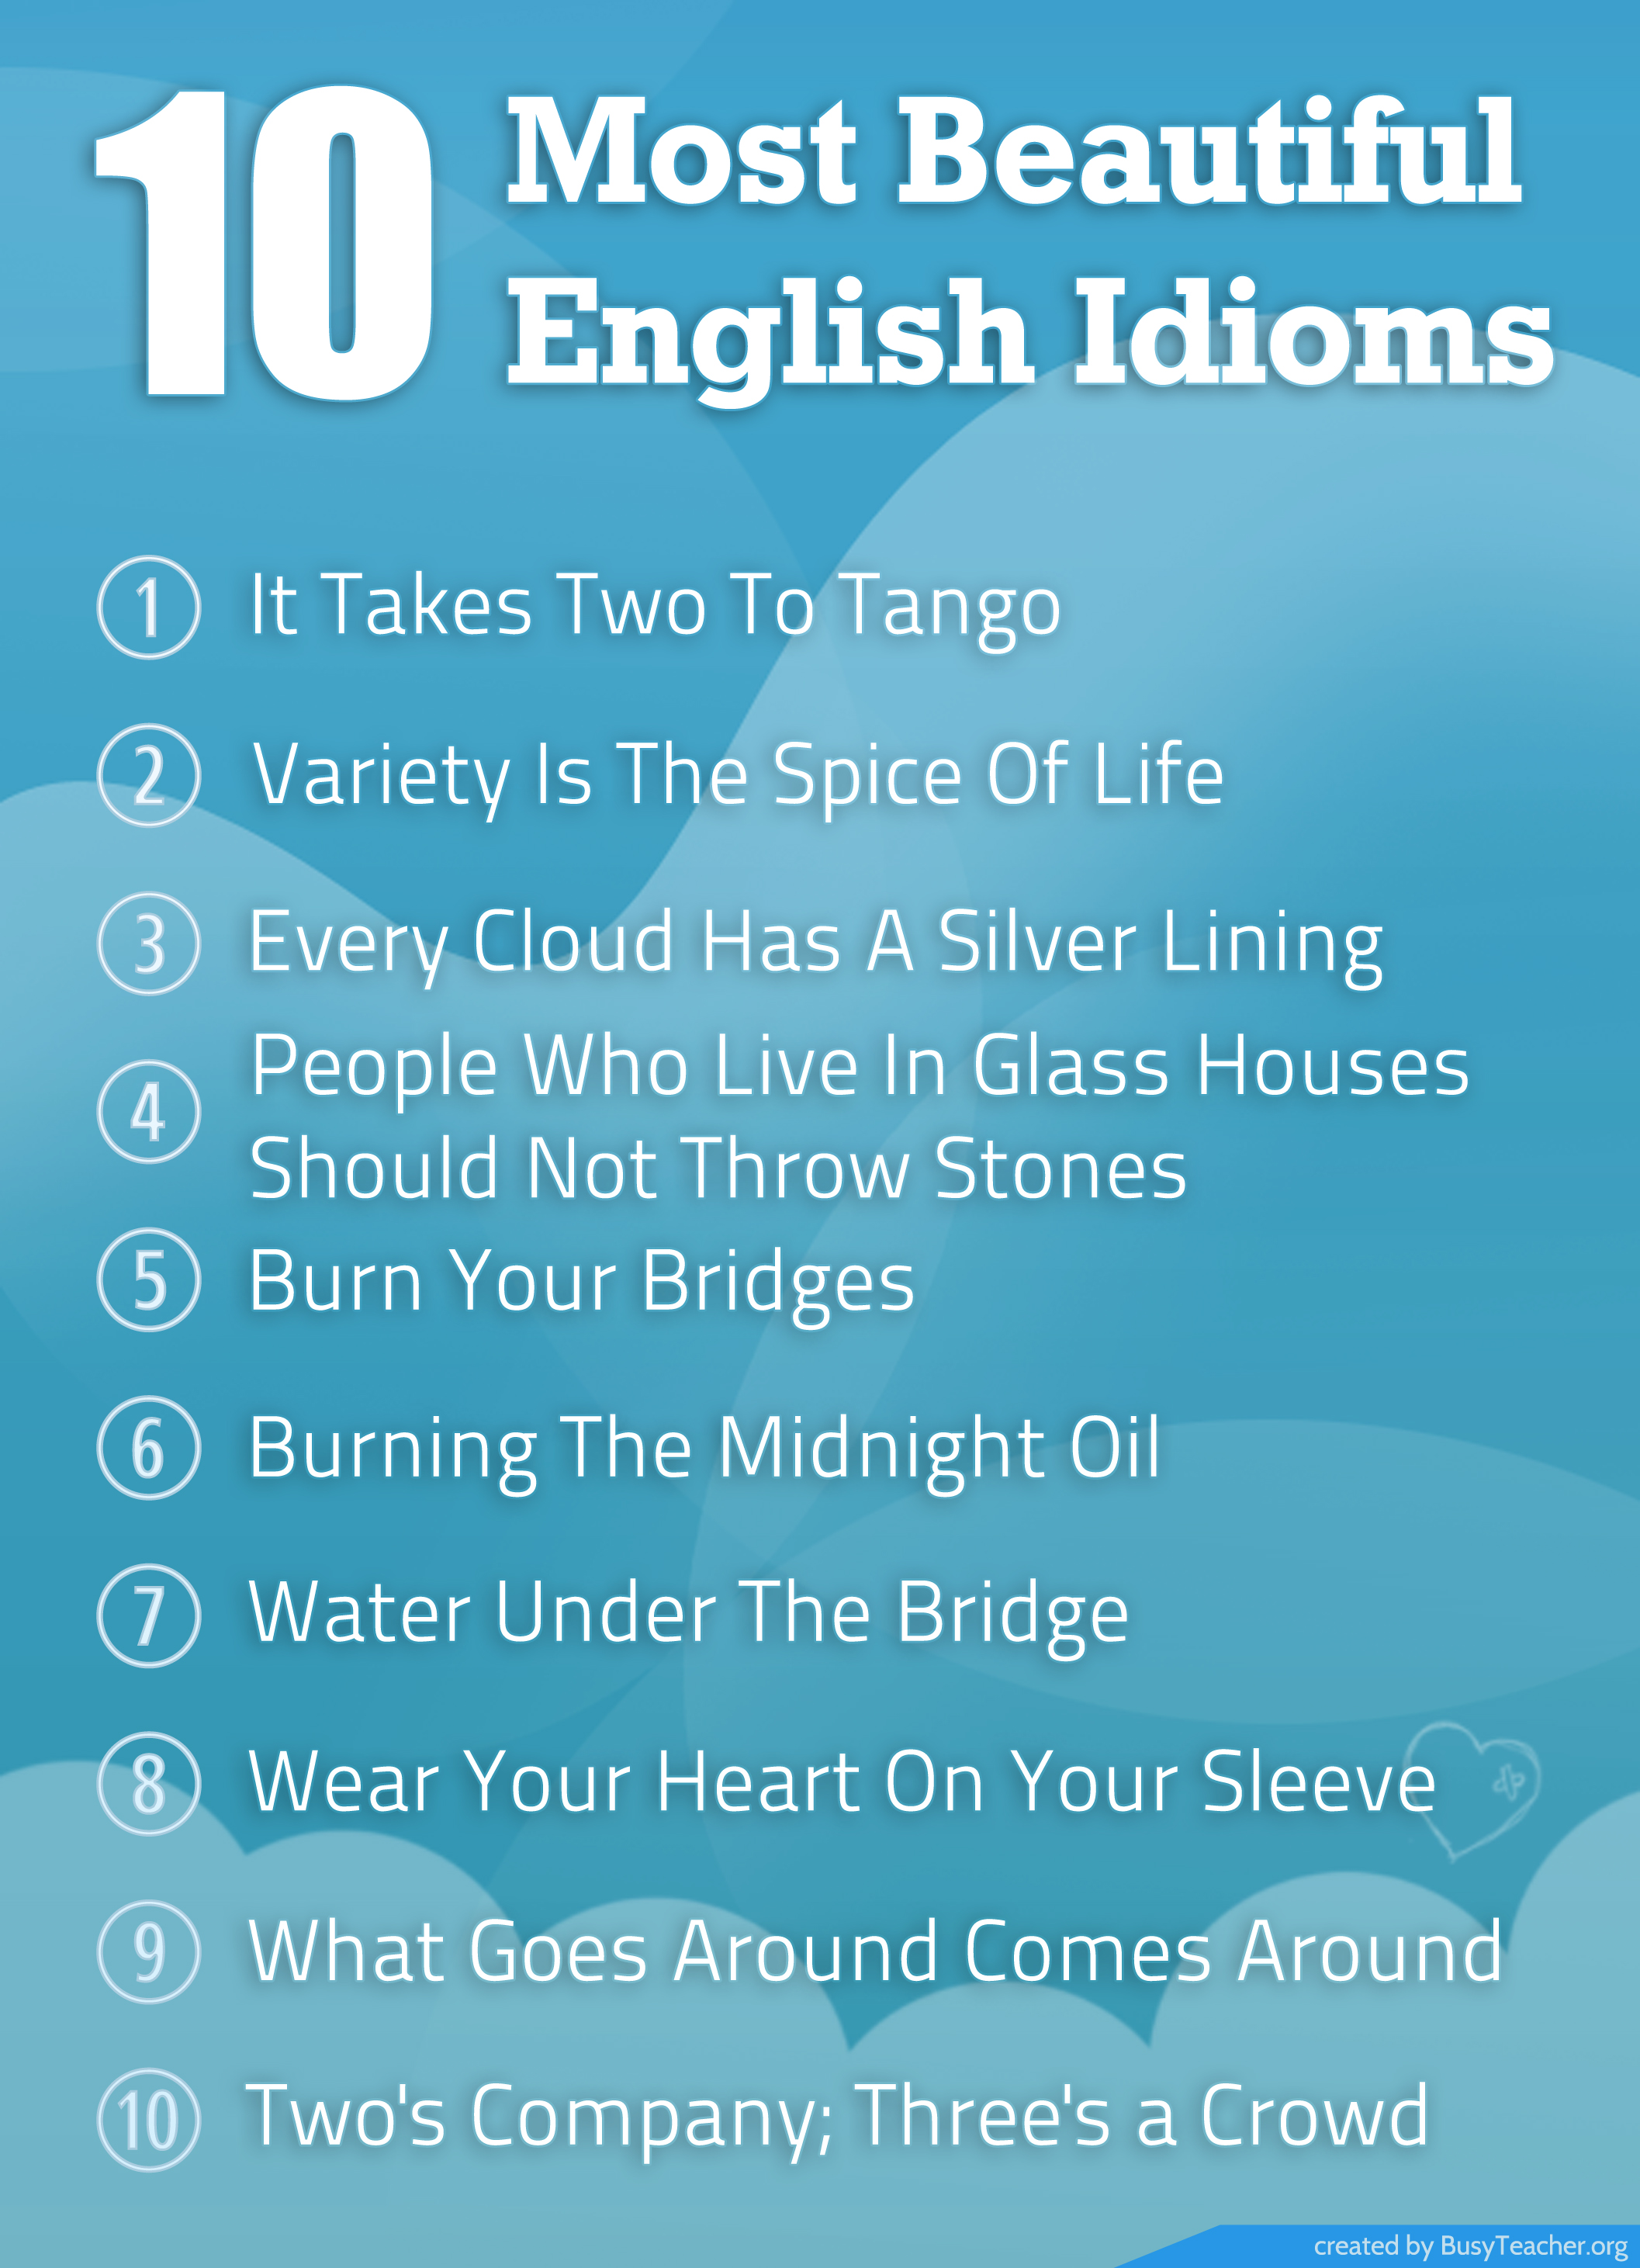 https://i2.wp.com/busyteacher.org/images/10-Most-Beautiful-English-Idioms.jpg